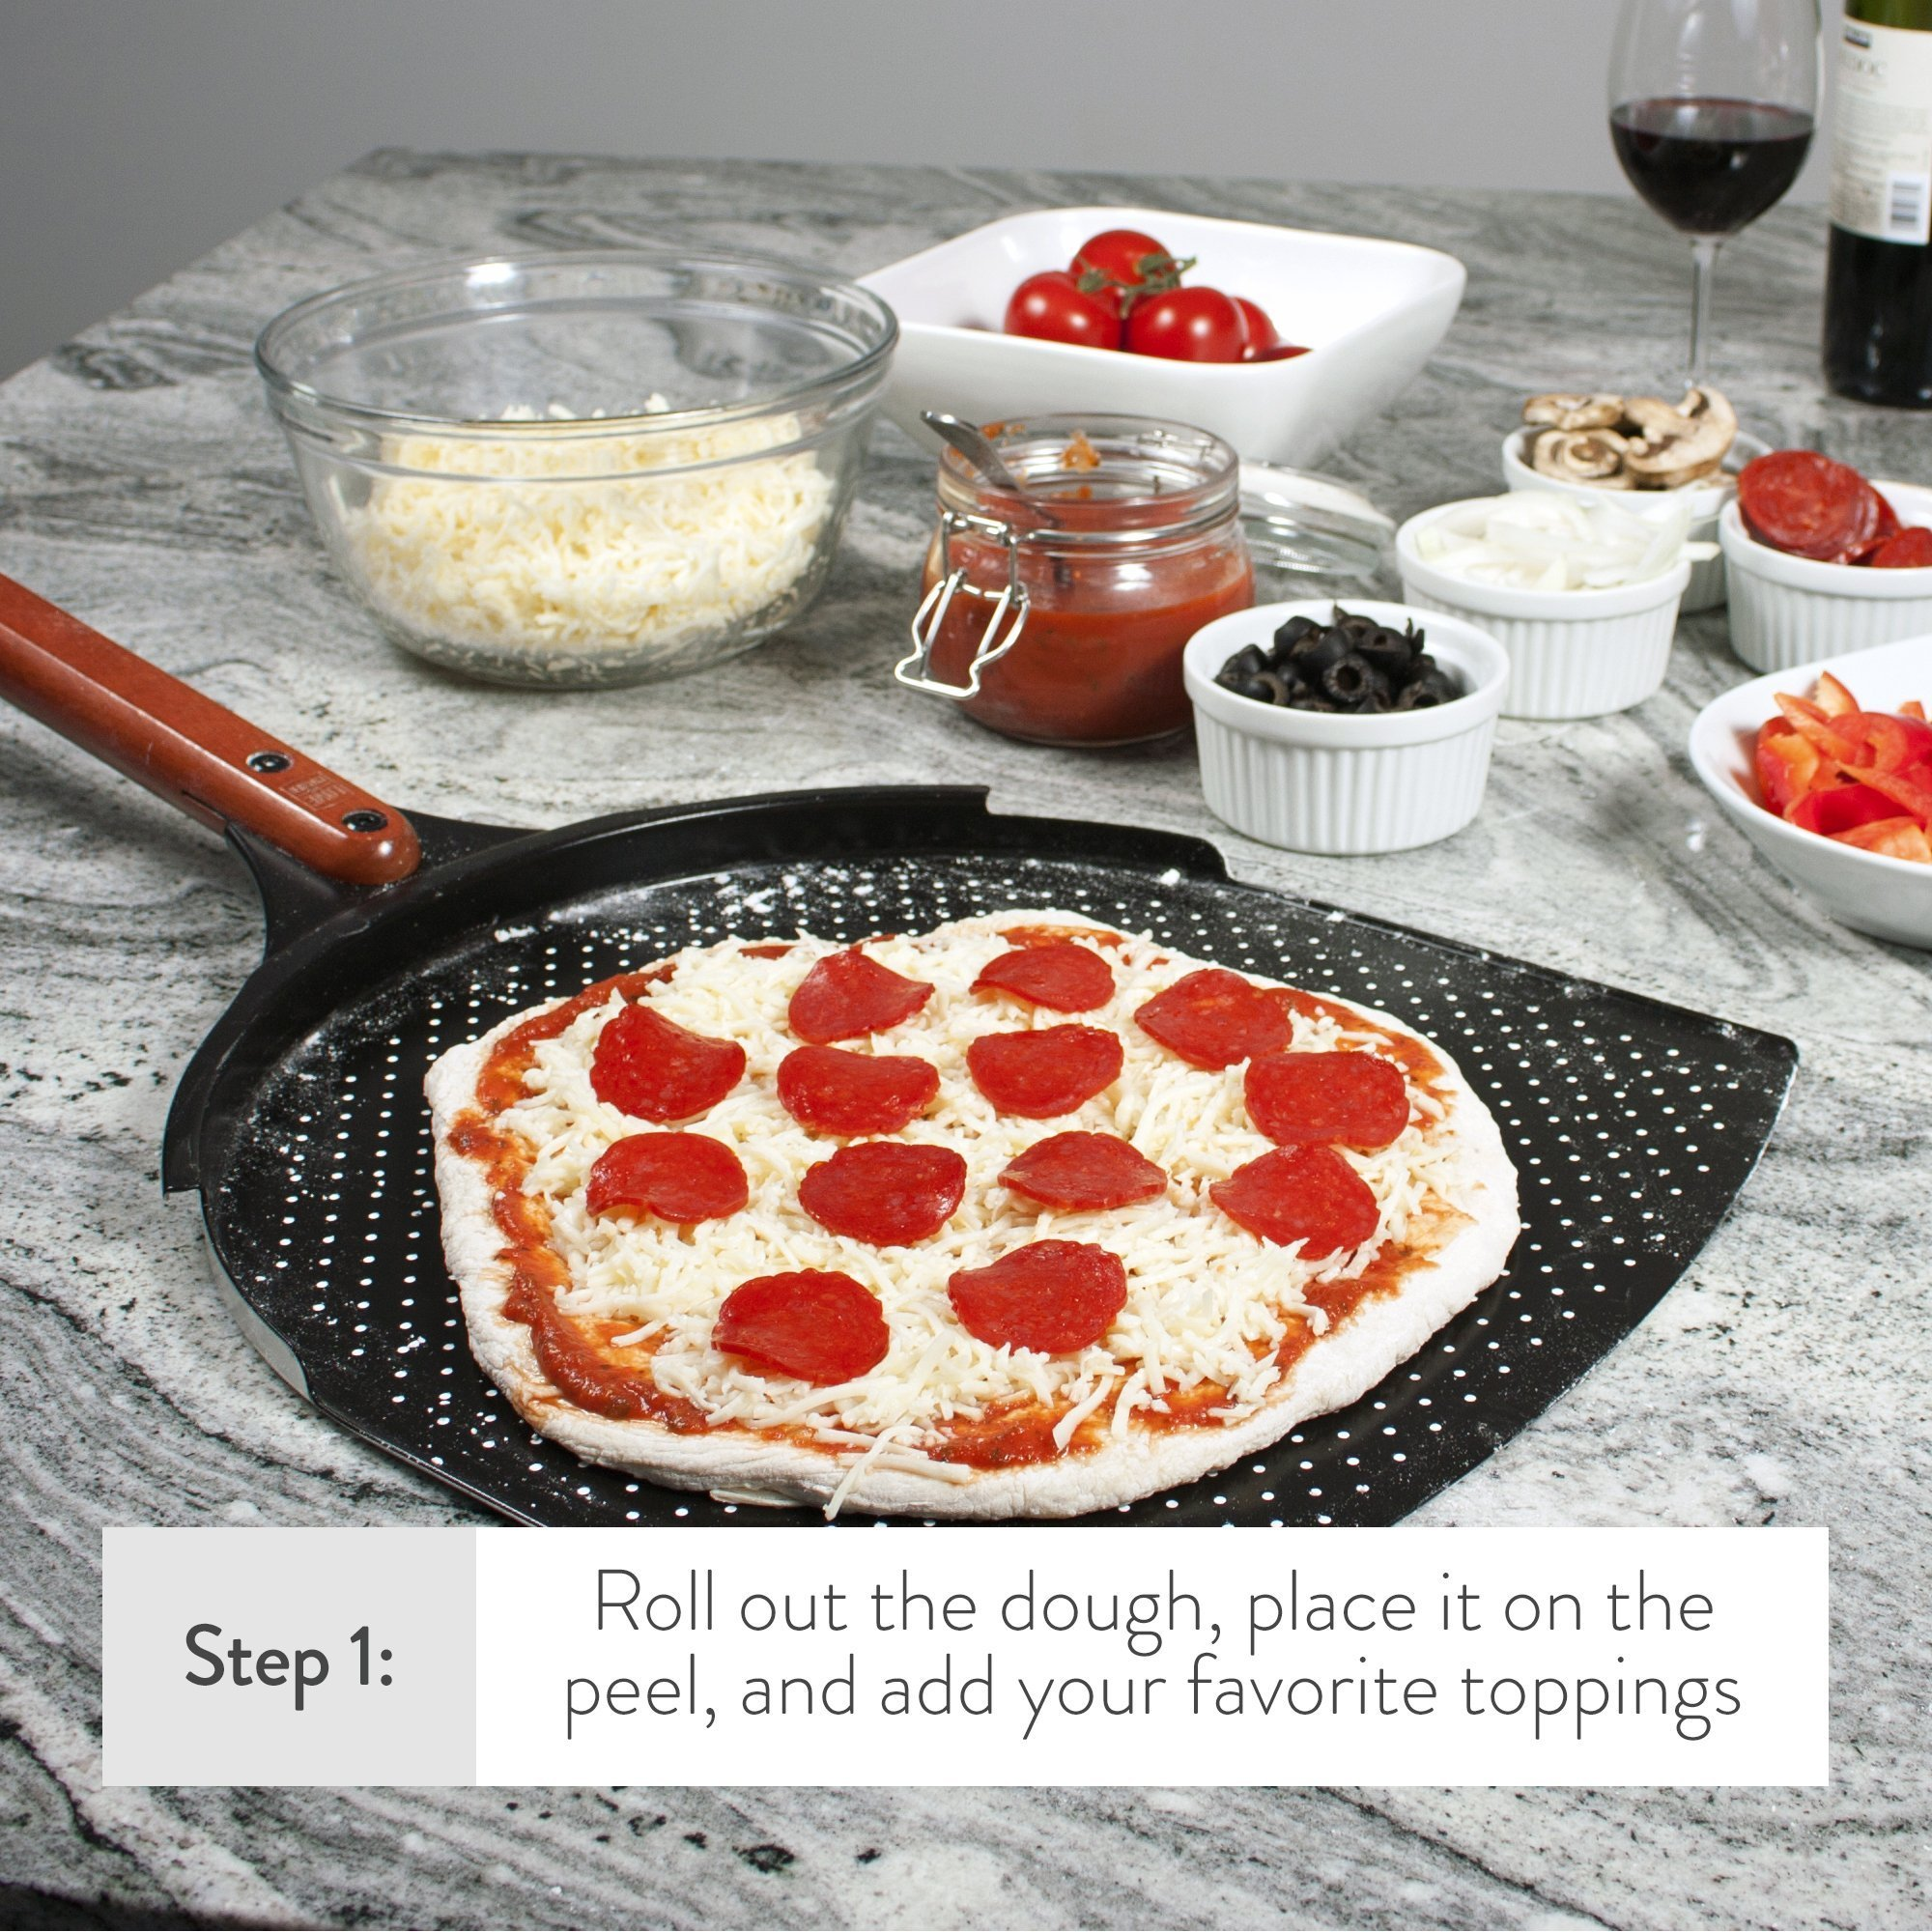 The Ultimate Aluminum Pizza Peel. 14'' Paddle with a Smooth Ceramic Coating, 10'' Wood Handle. Large & Lightweight, Use this Metal Spatula for Baking Pizzas and Breads on Oven & Grill by Love This Kitchen (Image #5)